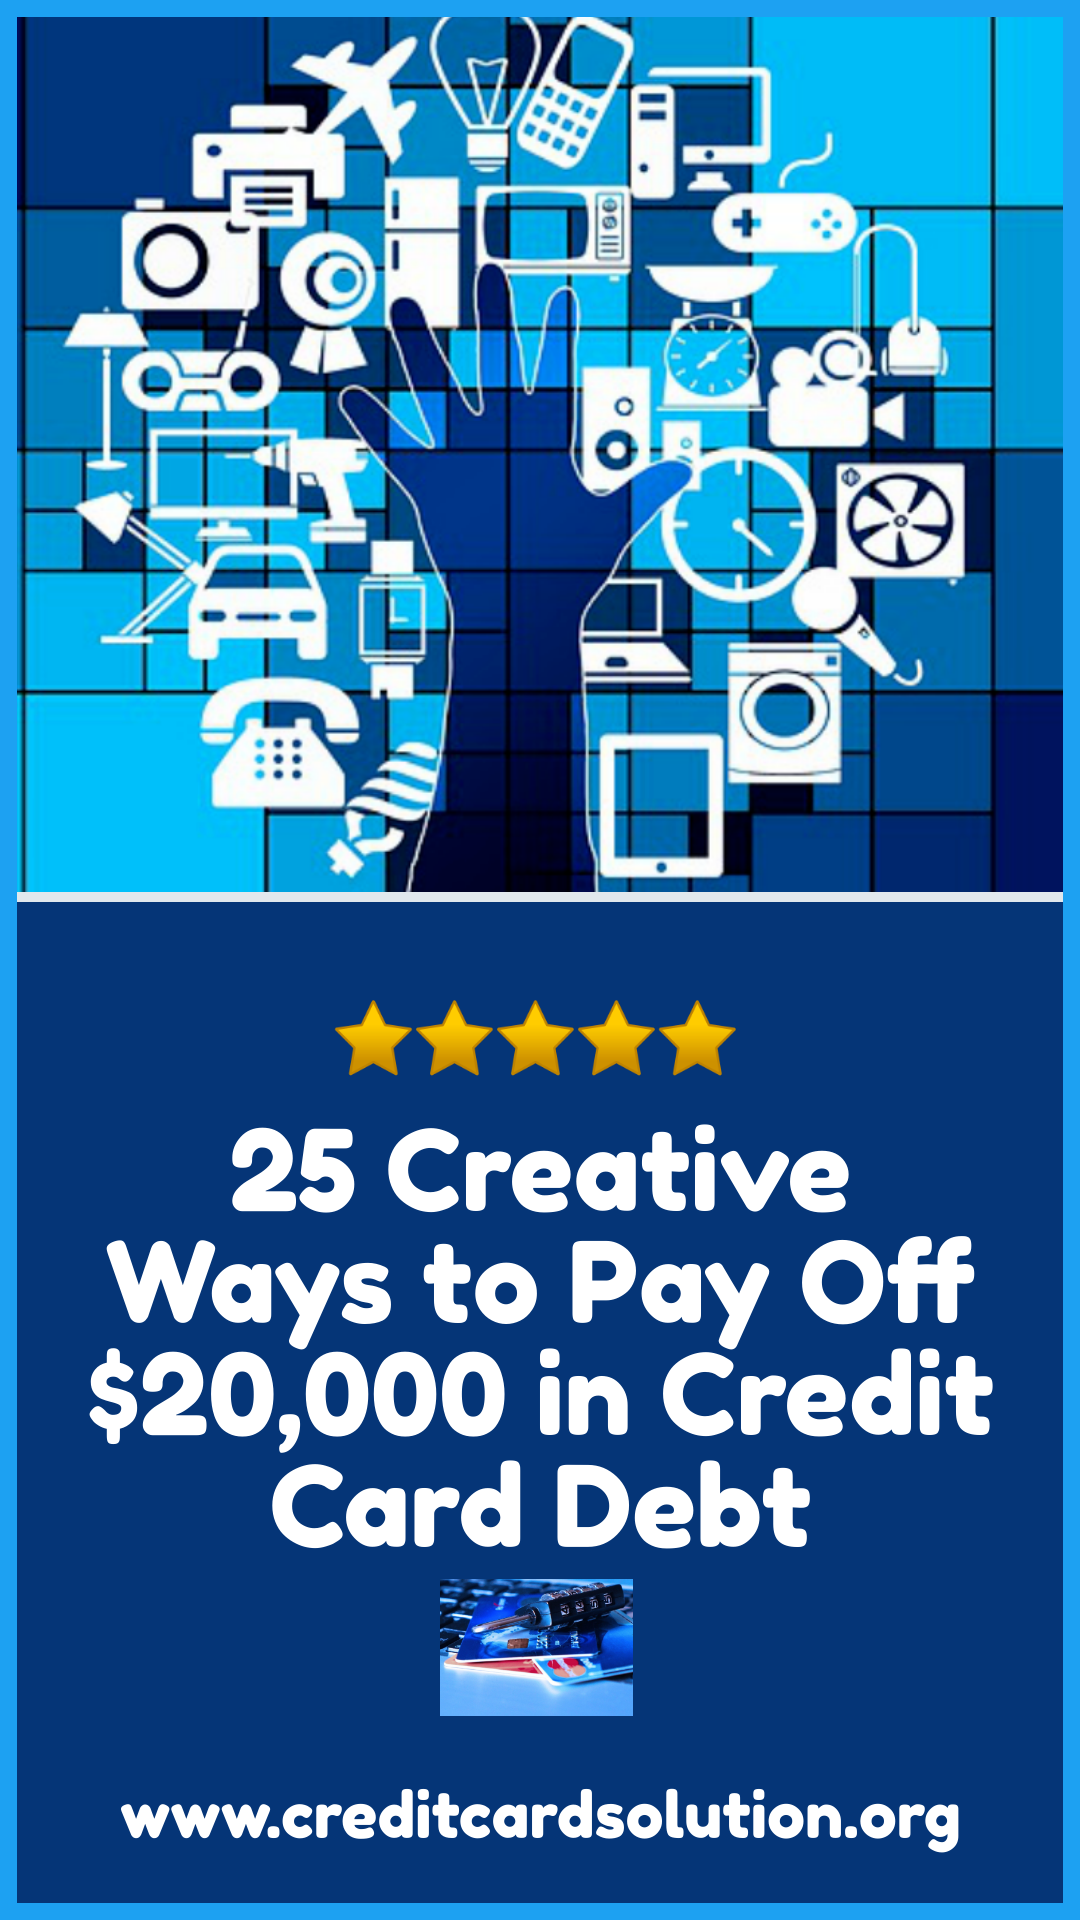 How We Paid Off 20 000 In Credit Card Debt Credit Card Solution Tips And Advice In 2020 Credit Cards Debt Paying Off Credit Cards Credit Card Debt Relief